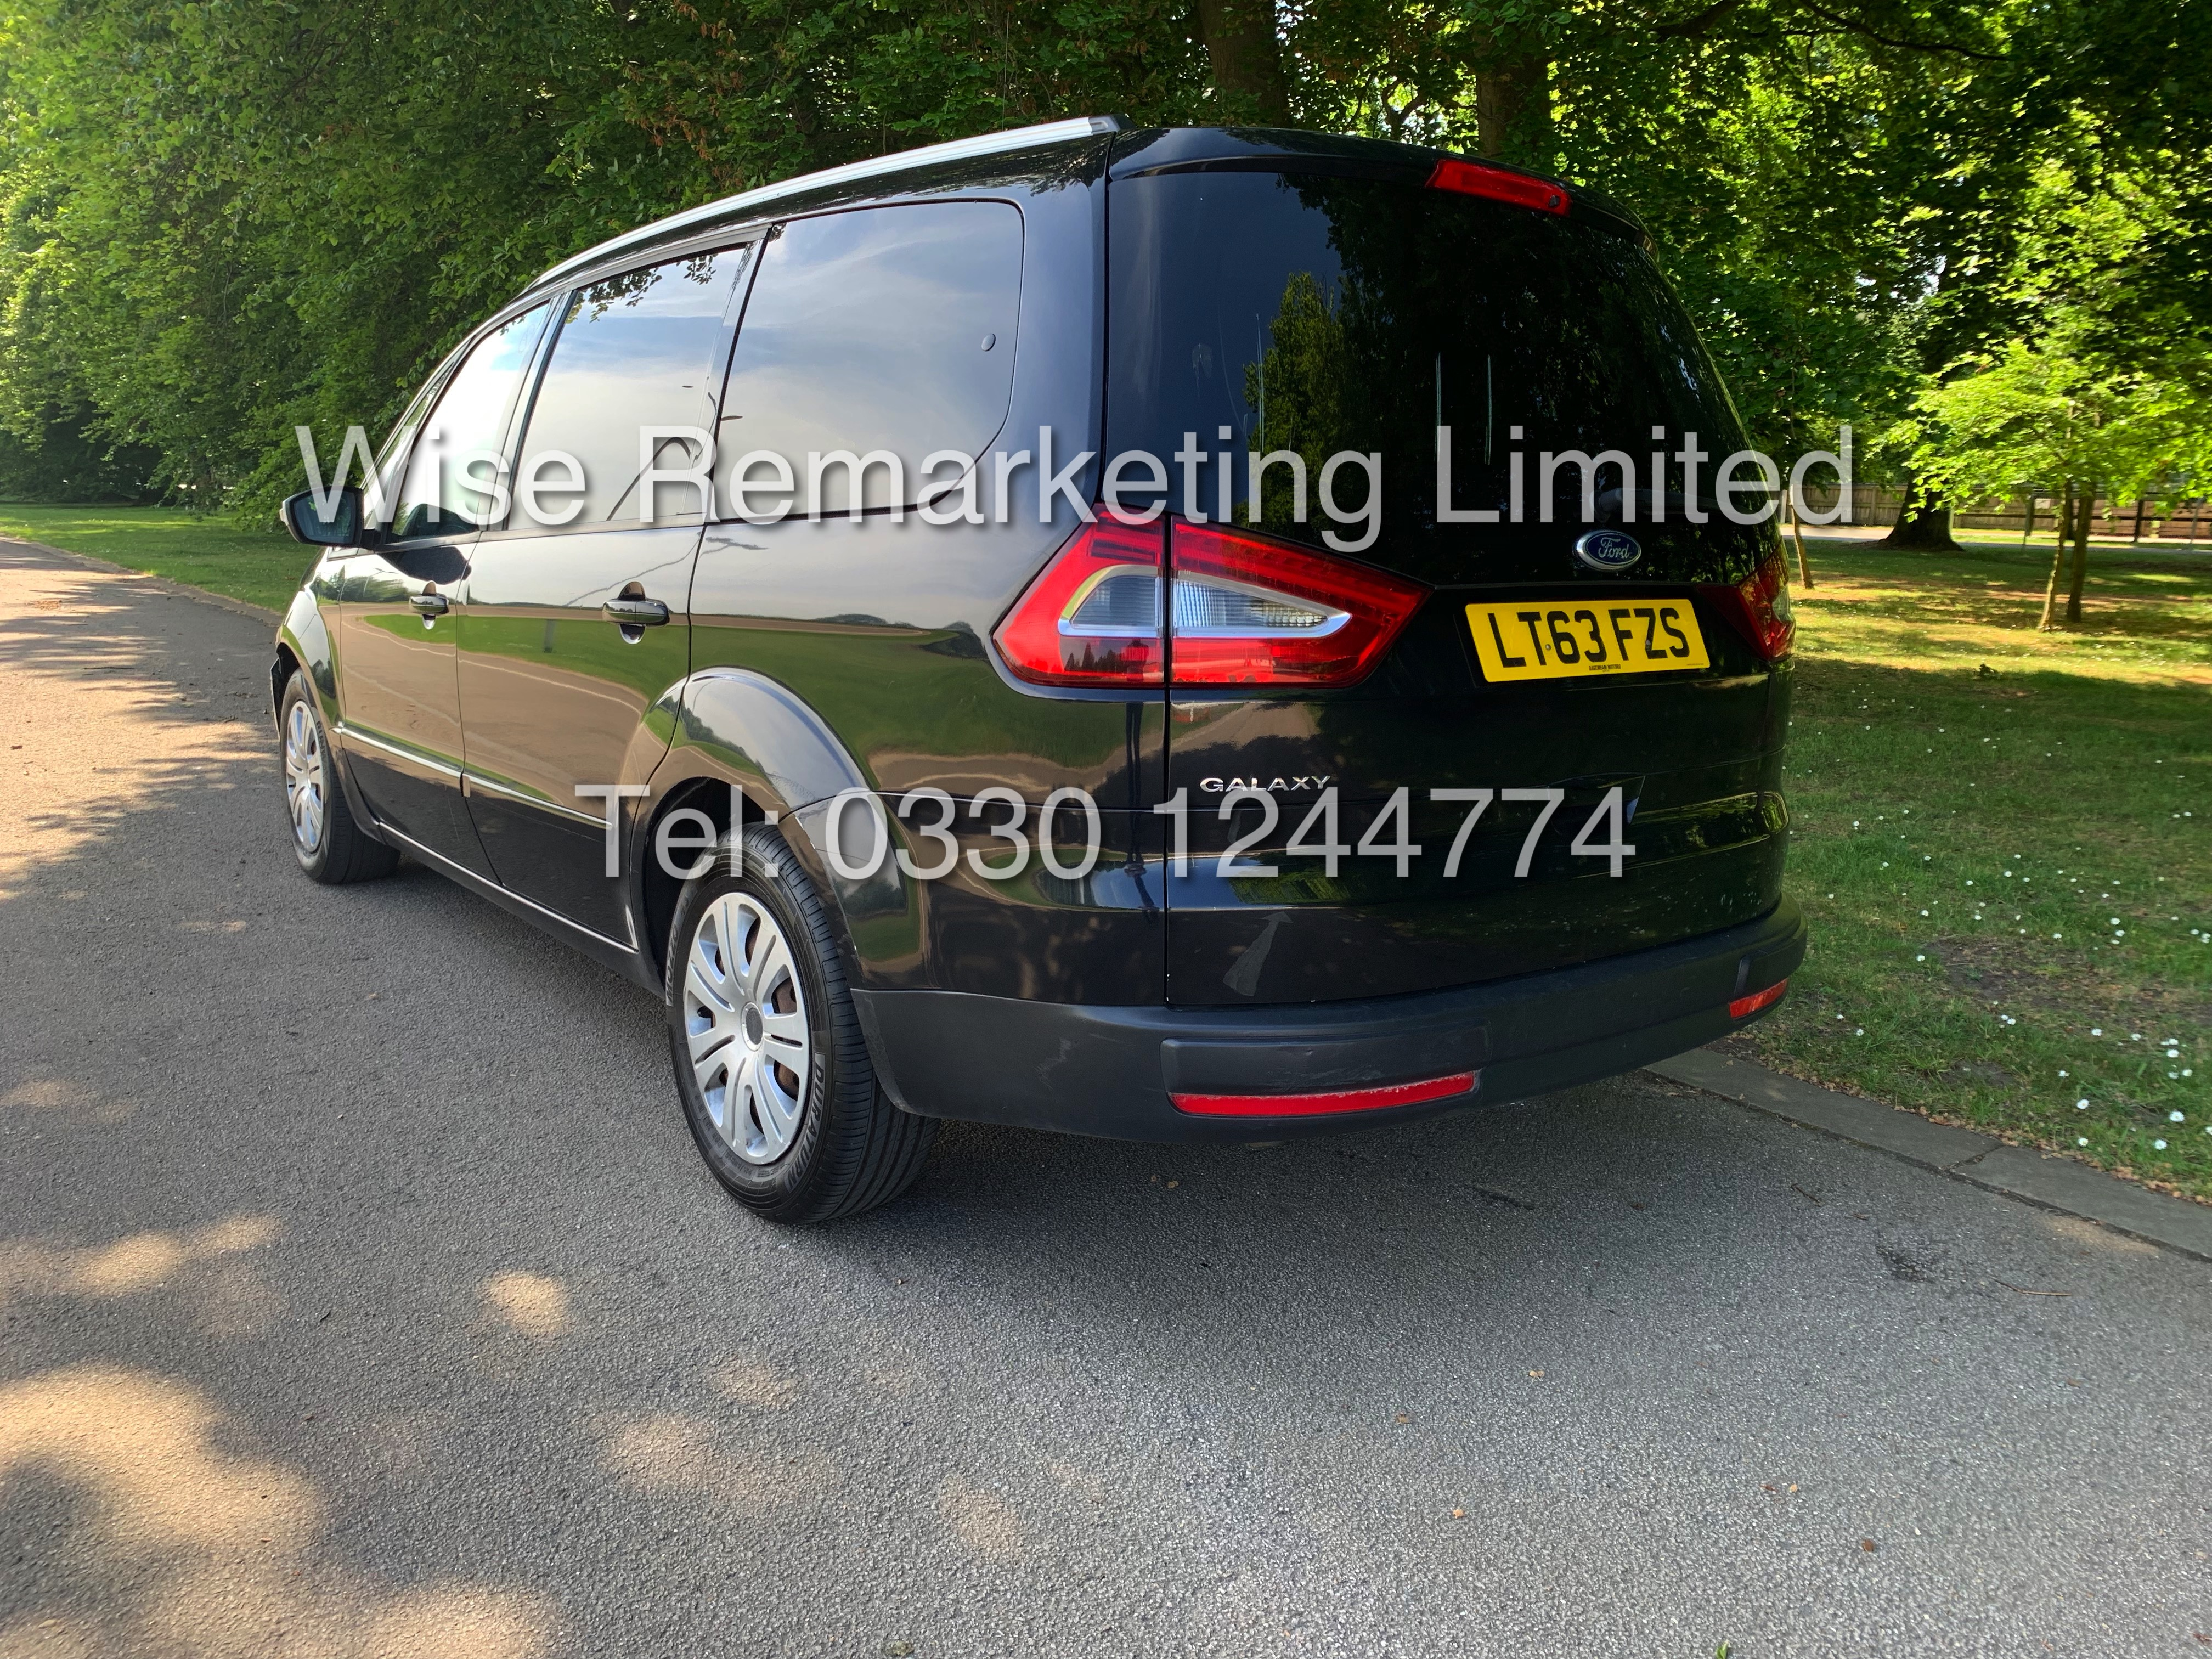 FORD GALAXY ZETEC 2.0L TDCI AUTO 7 SEATER MPV 63 REG *1 OWNER* - Image 3 of 20